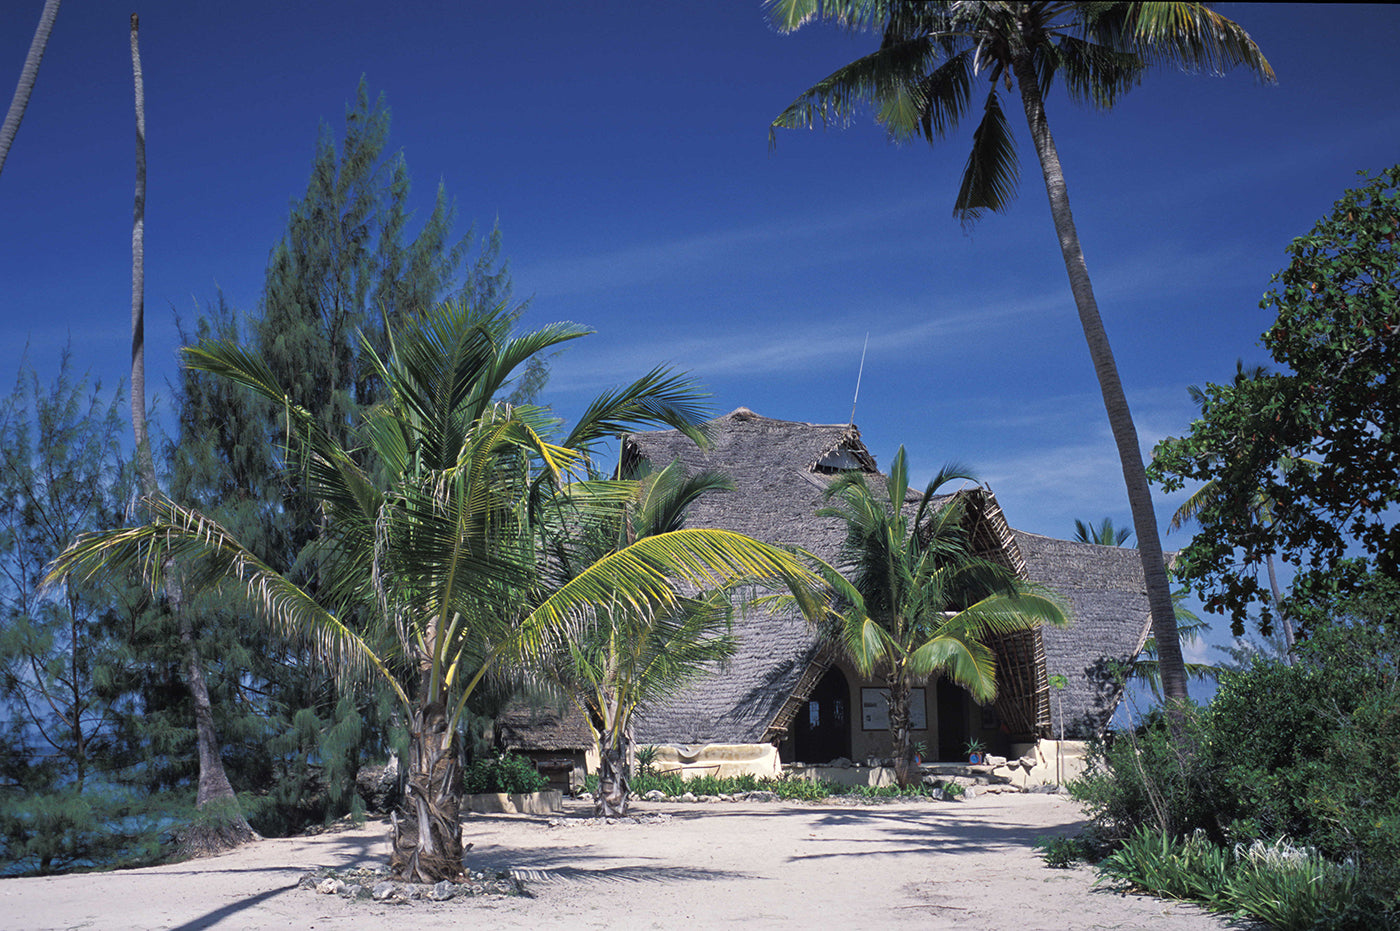 Education centre at Chumbe Island. Photo by Chumbe Island